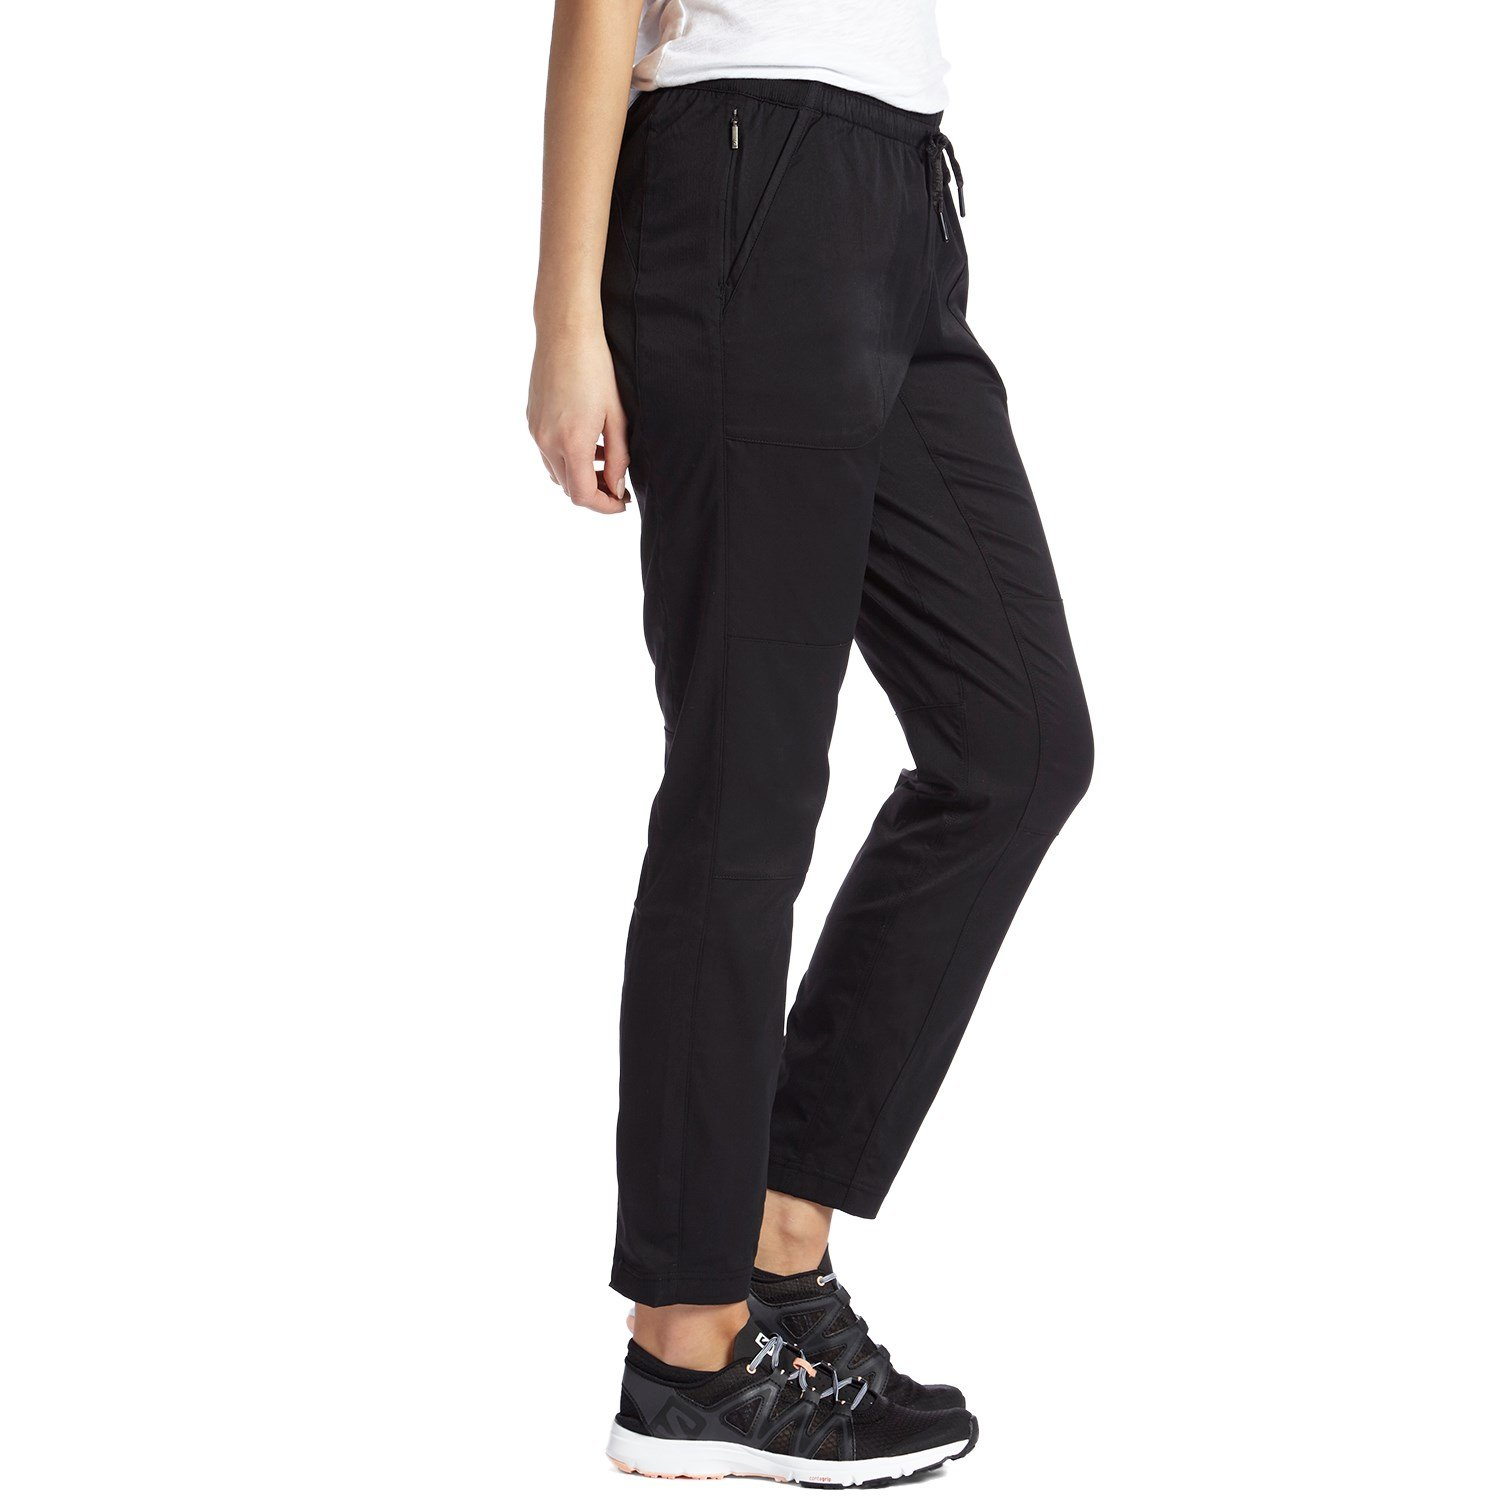 1d323a1bb The North Face Aphrodite Motion Pants - Women's